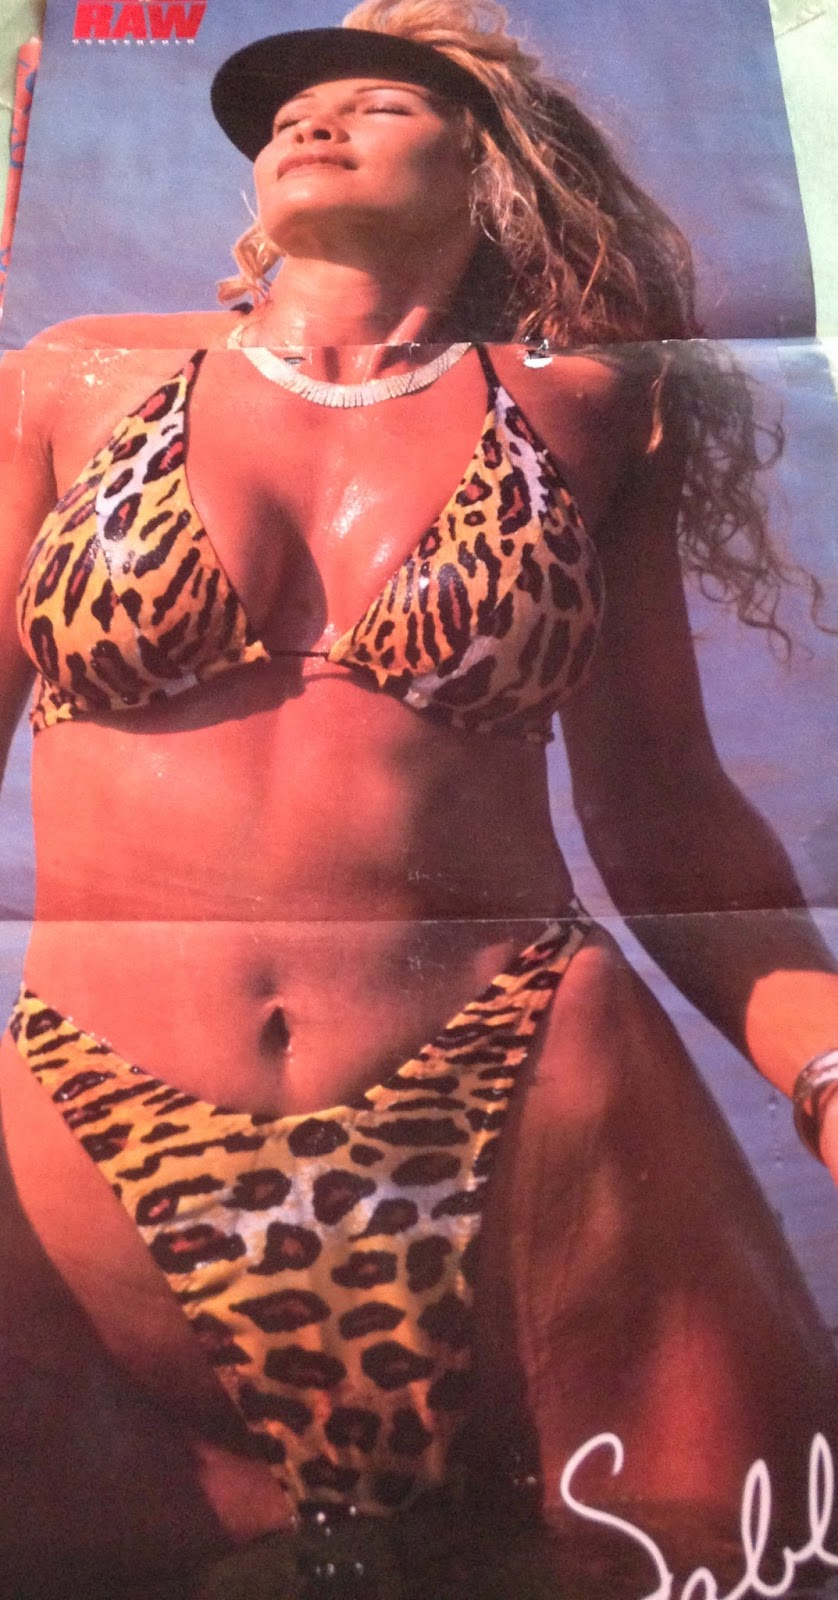 WWE: WWF RAW MAGAZINE - January 1998 - Sable in a tigerprint swimsuit